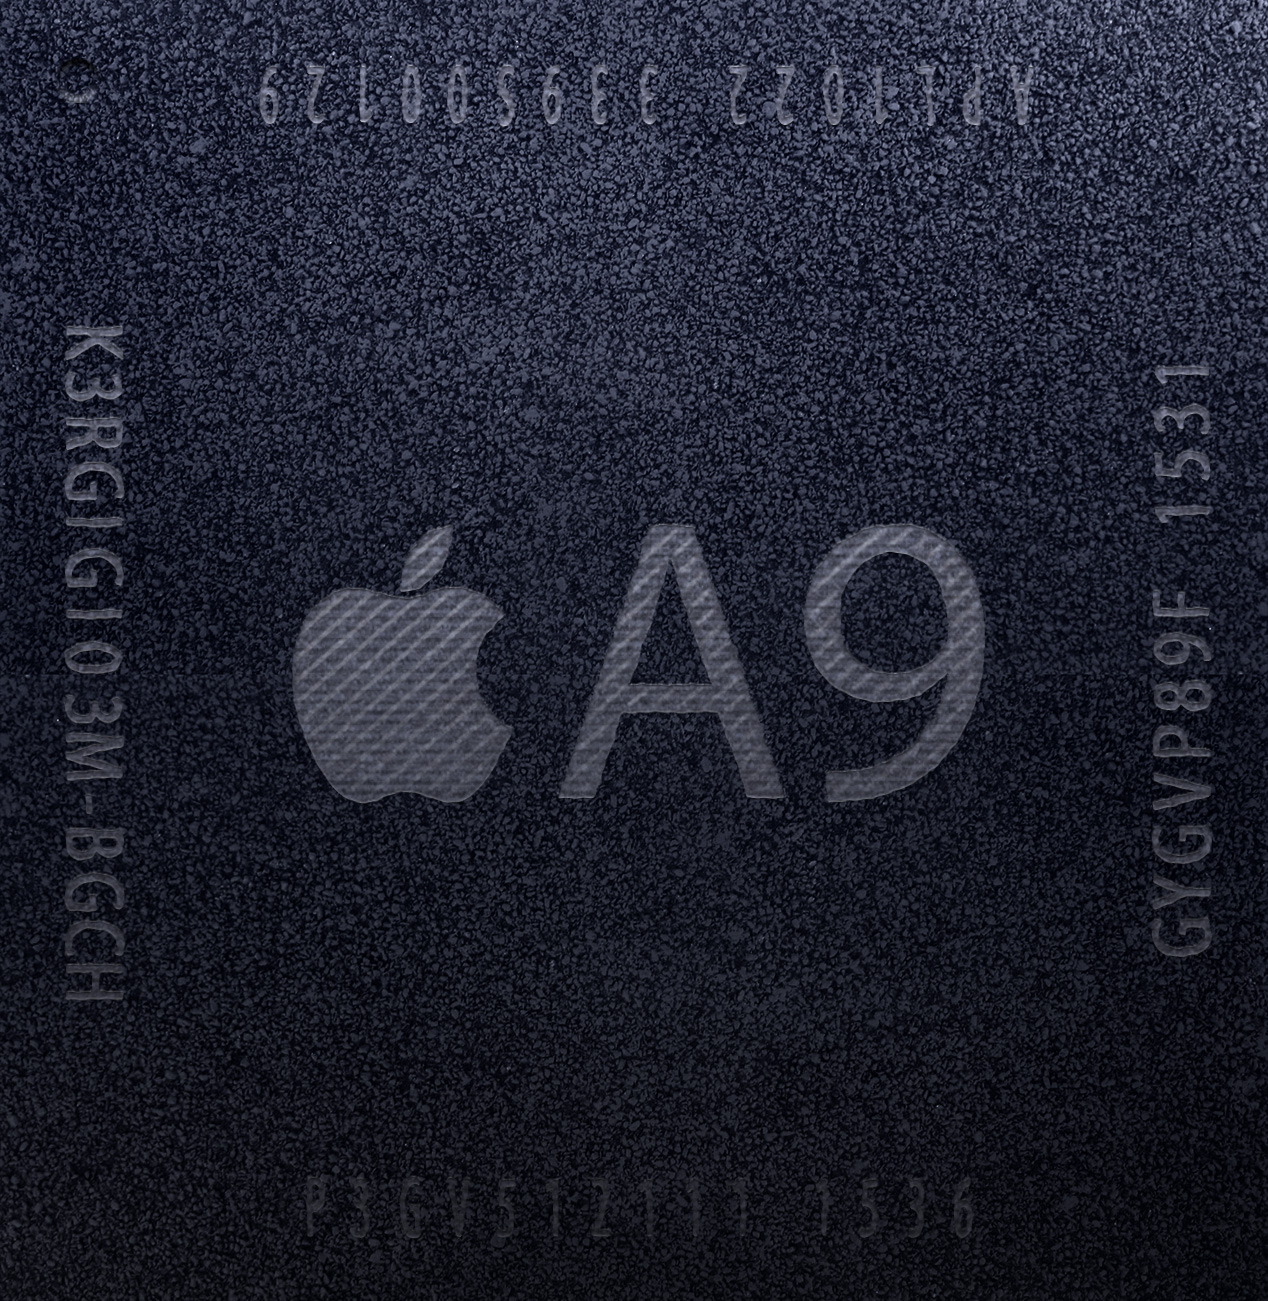 CPU Apple A9 fabricada por TSMC